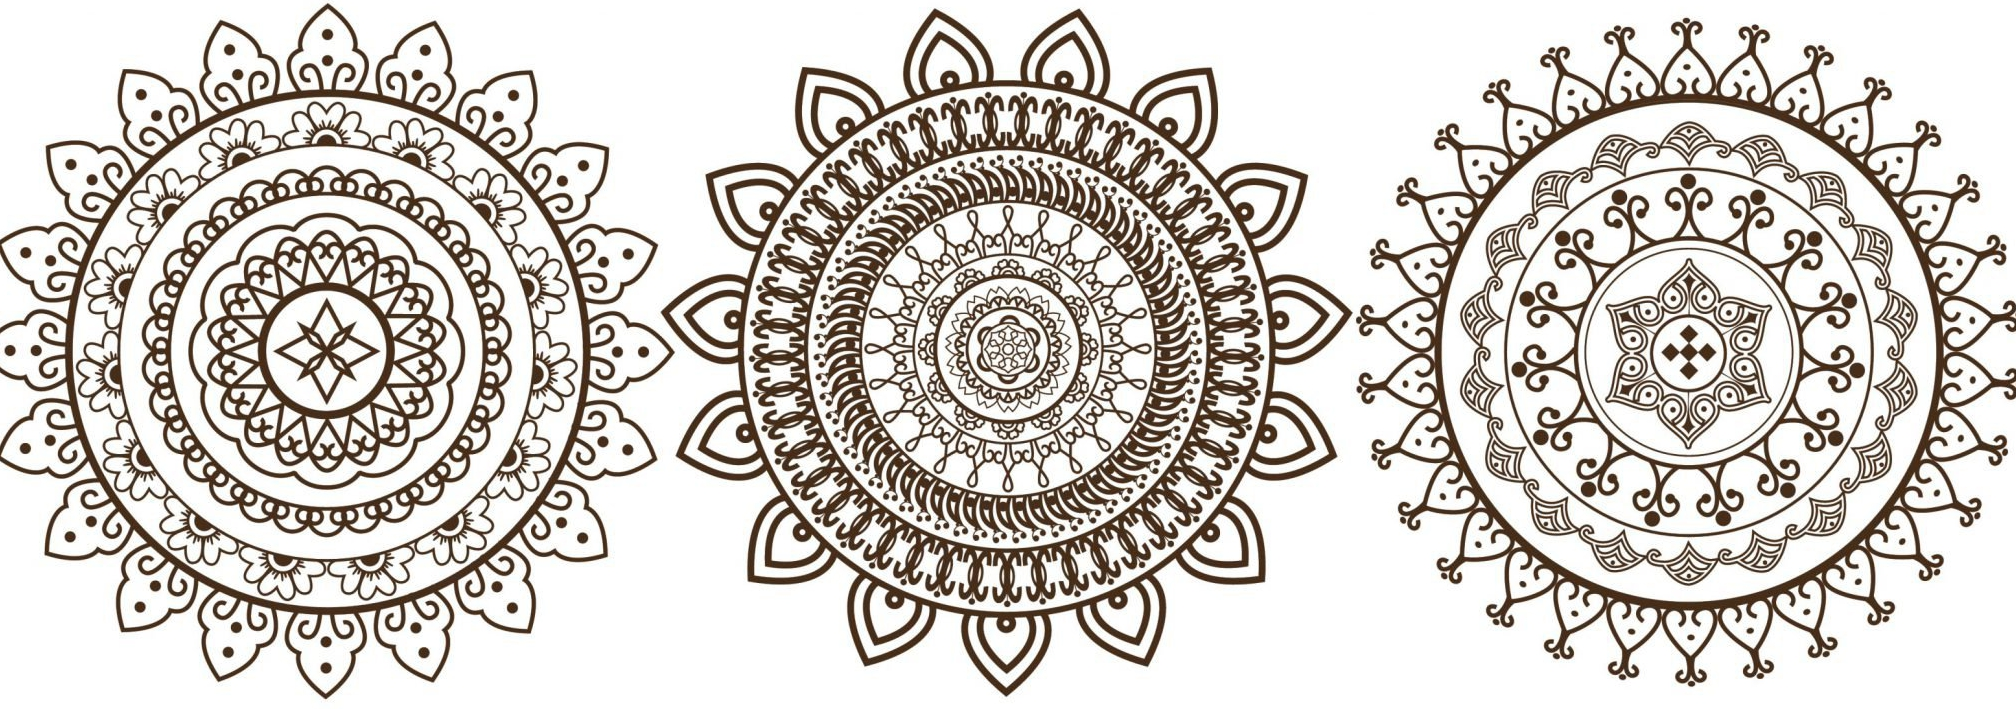 How To Draw A Mandala Mandalas Life